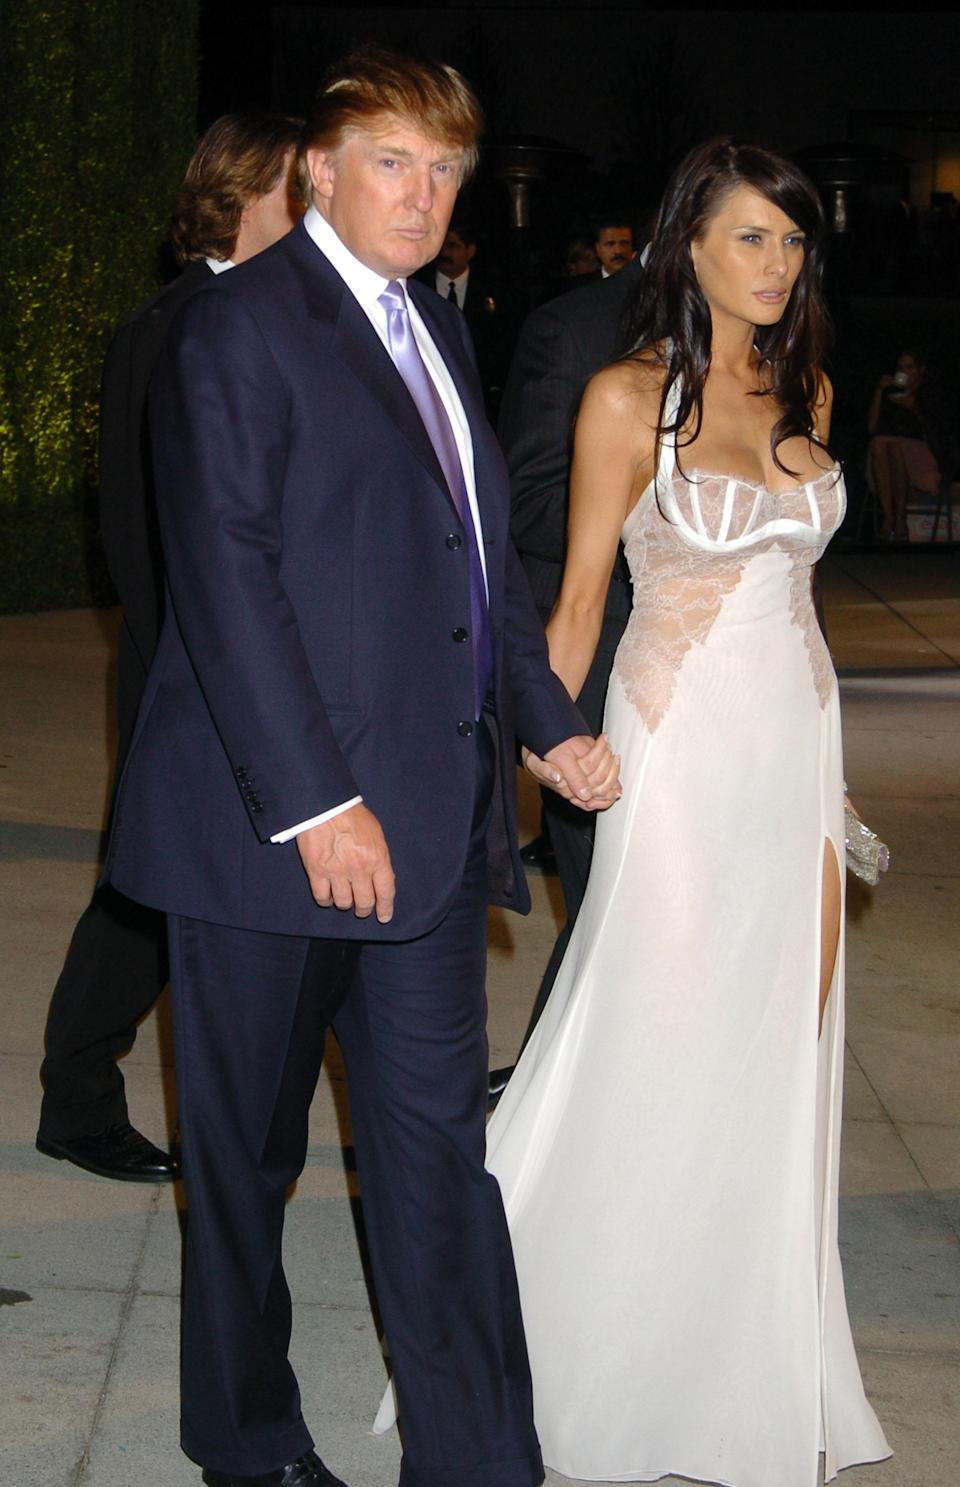 <p>At the 2004 Oscars, Melania wore a lacy lingerie-style white bustier dress with a thigh-high slit. The sexy look was pulled together by her dark shoulder-length locks. Donald went with a navy suit, white dress shirt, and lilac tie. (Photo: Getty Images) </p>